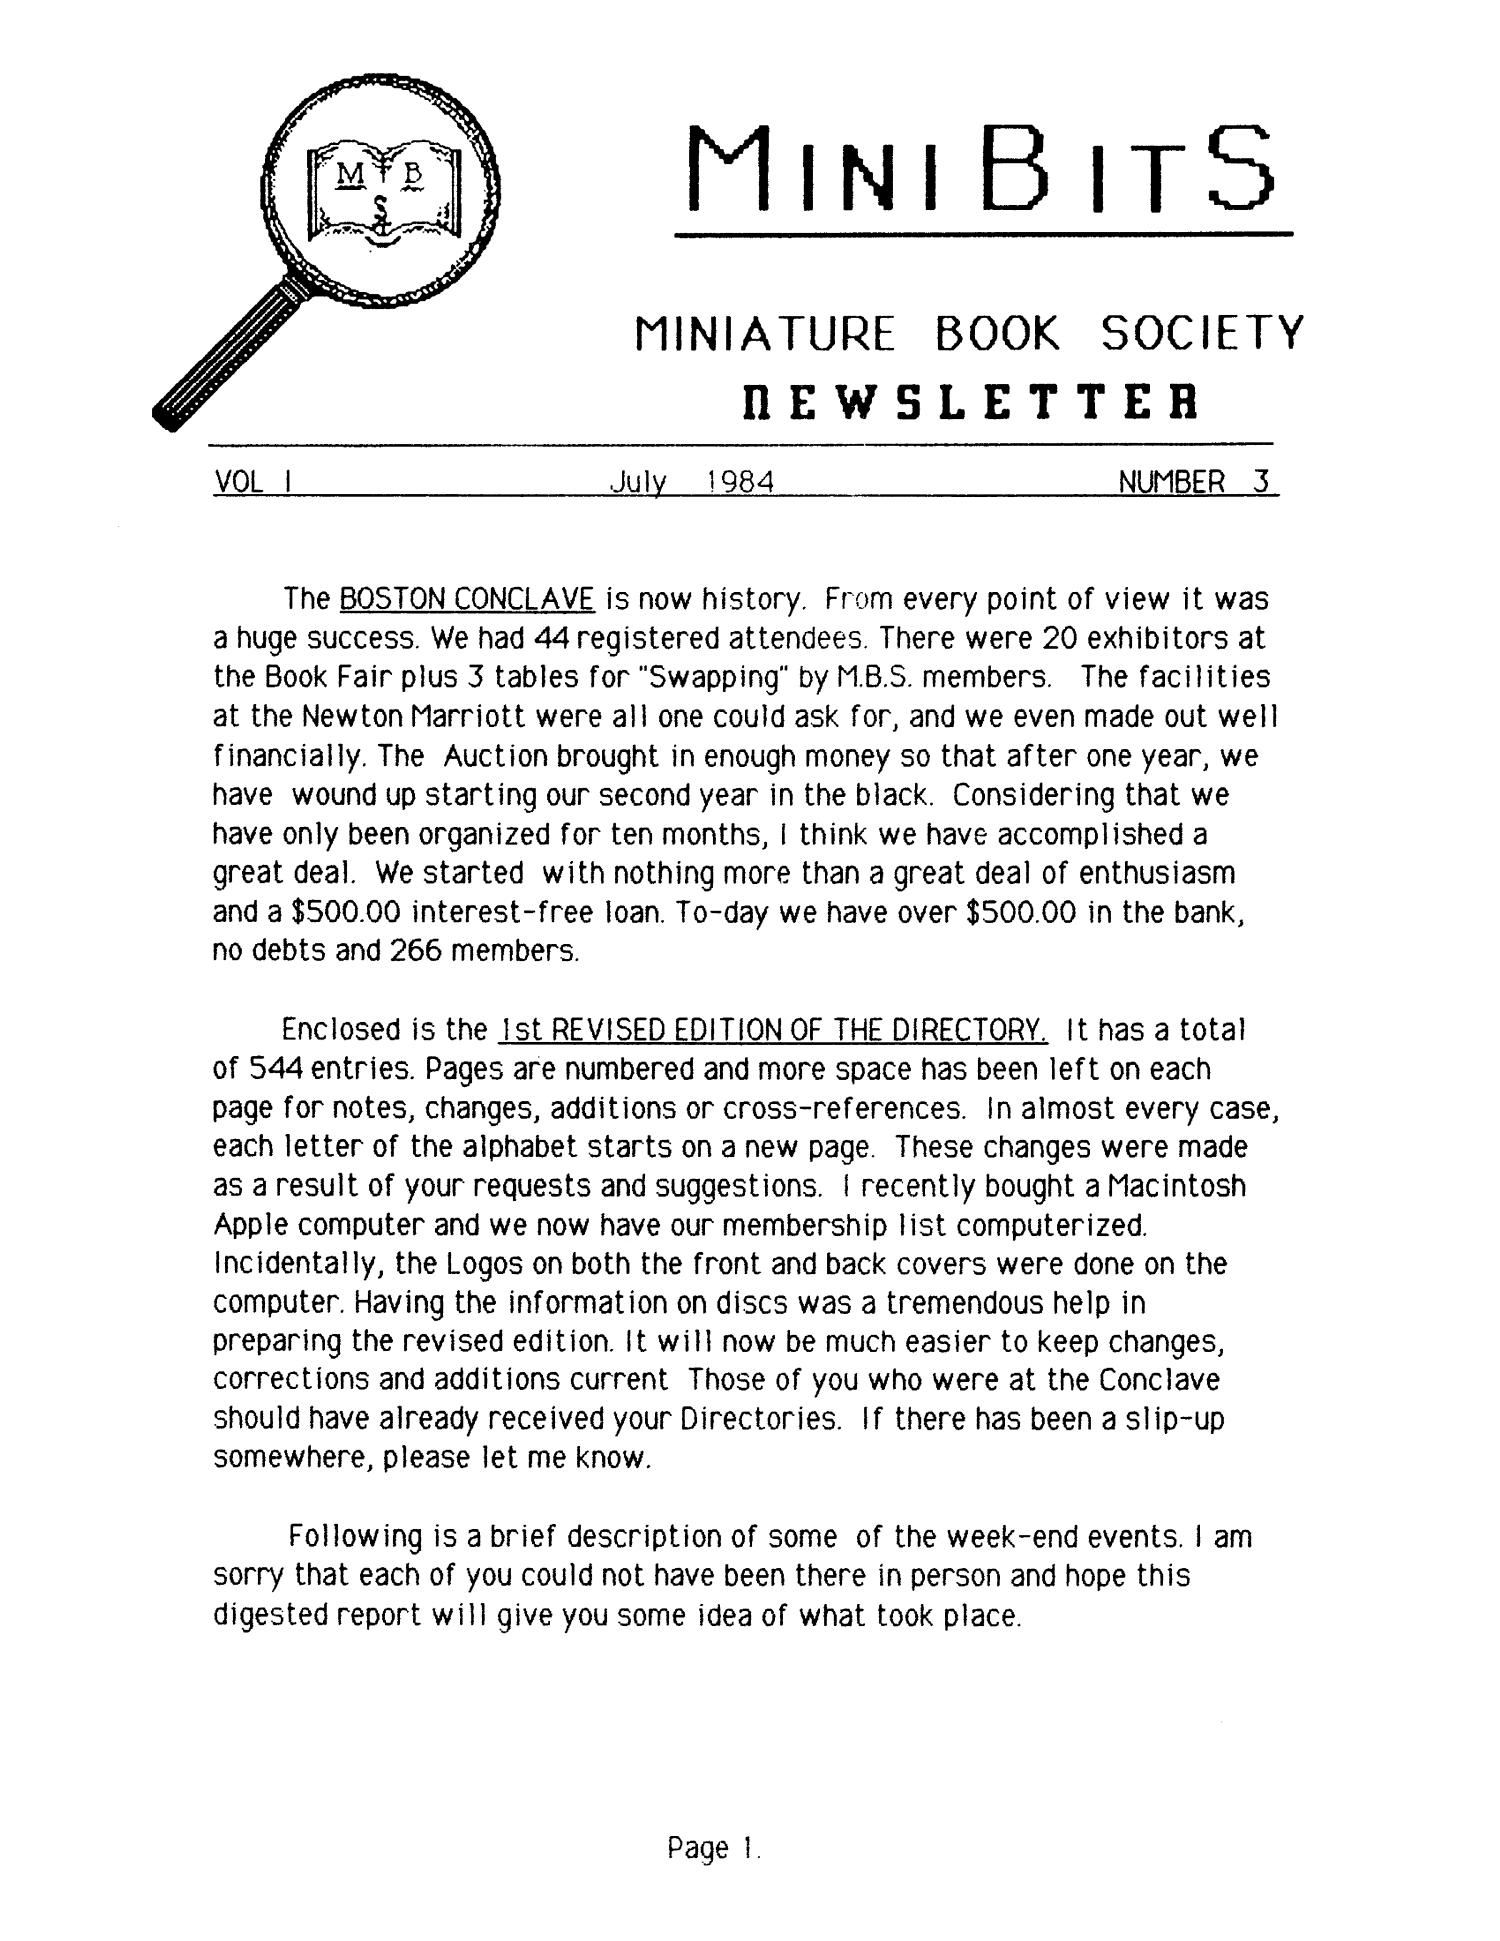 Miniature Book Society Newsletter 1984 July                                                                                                      1